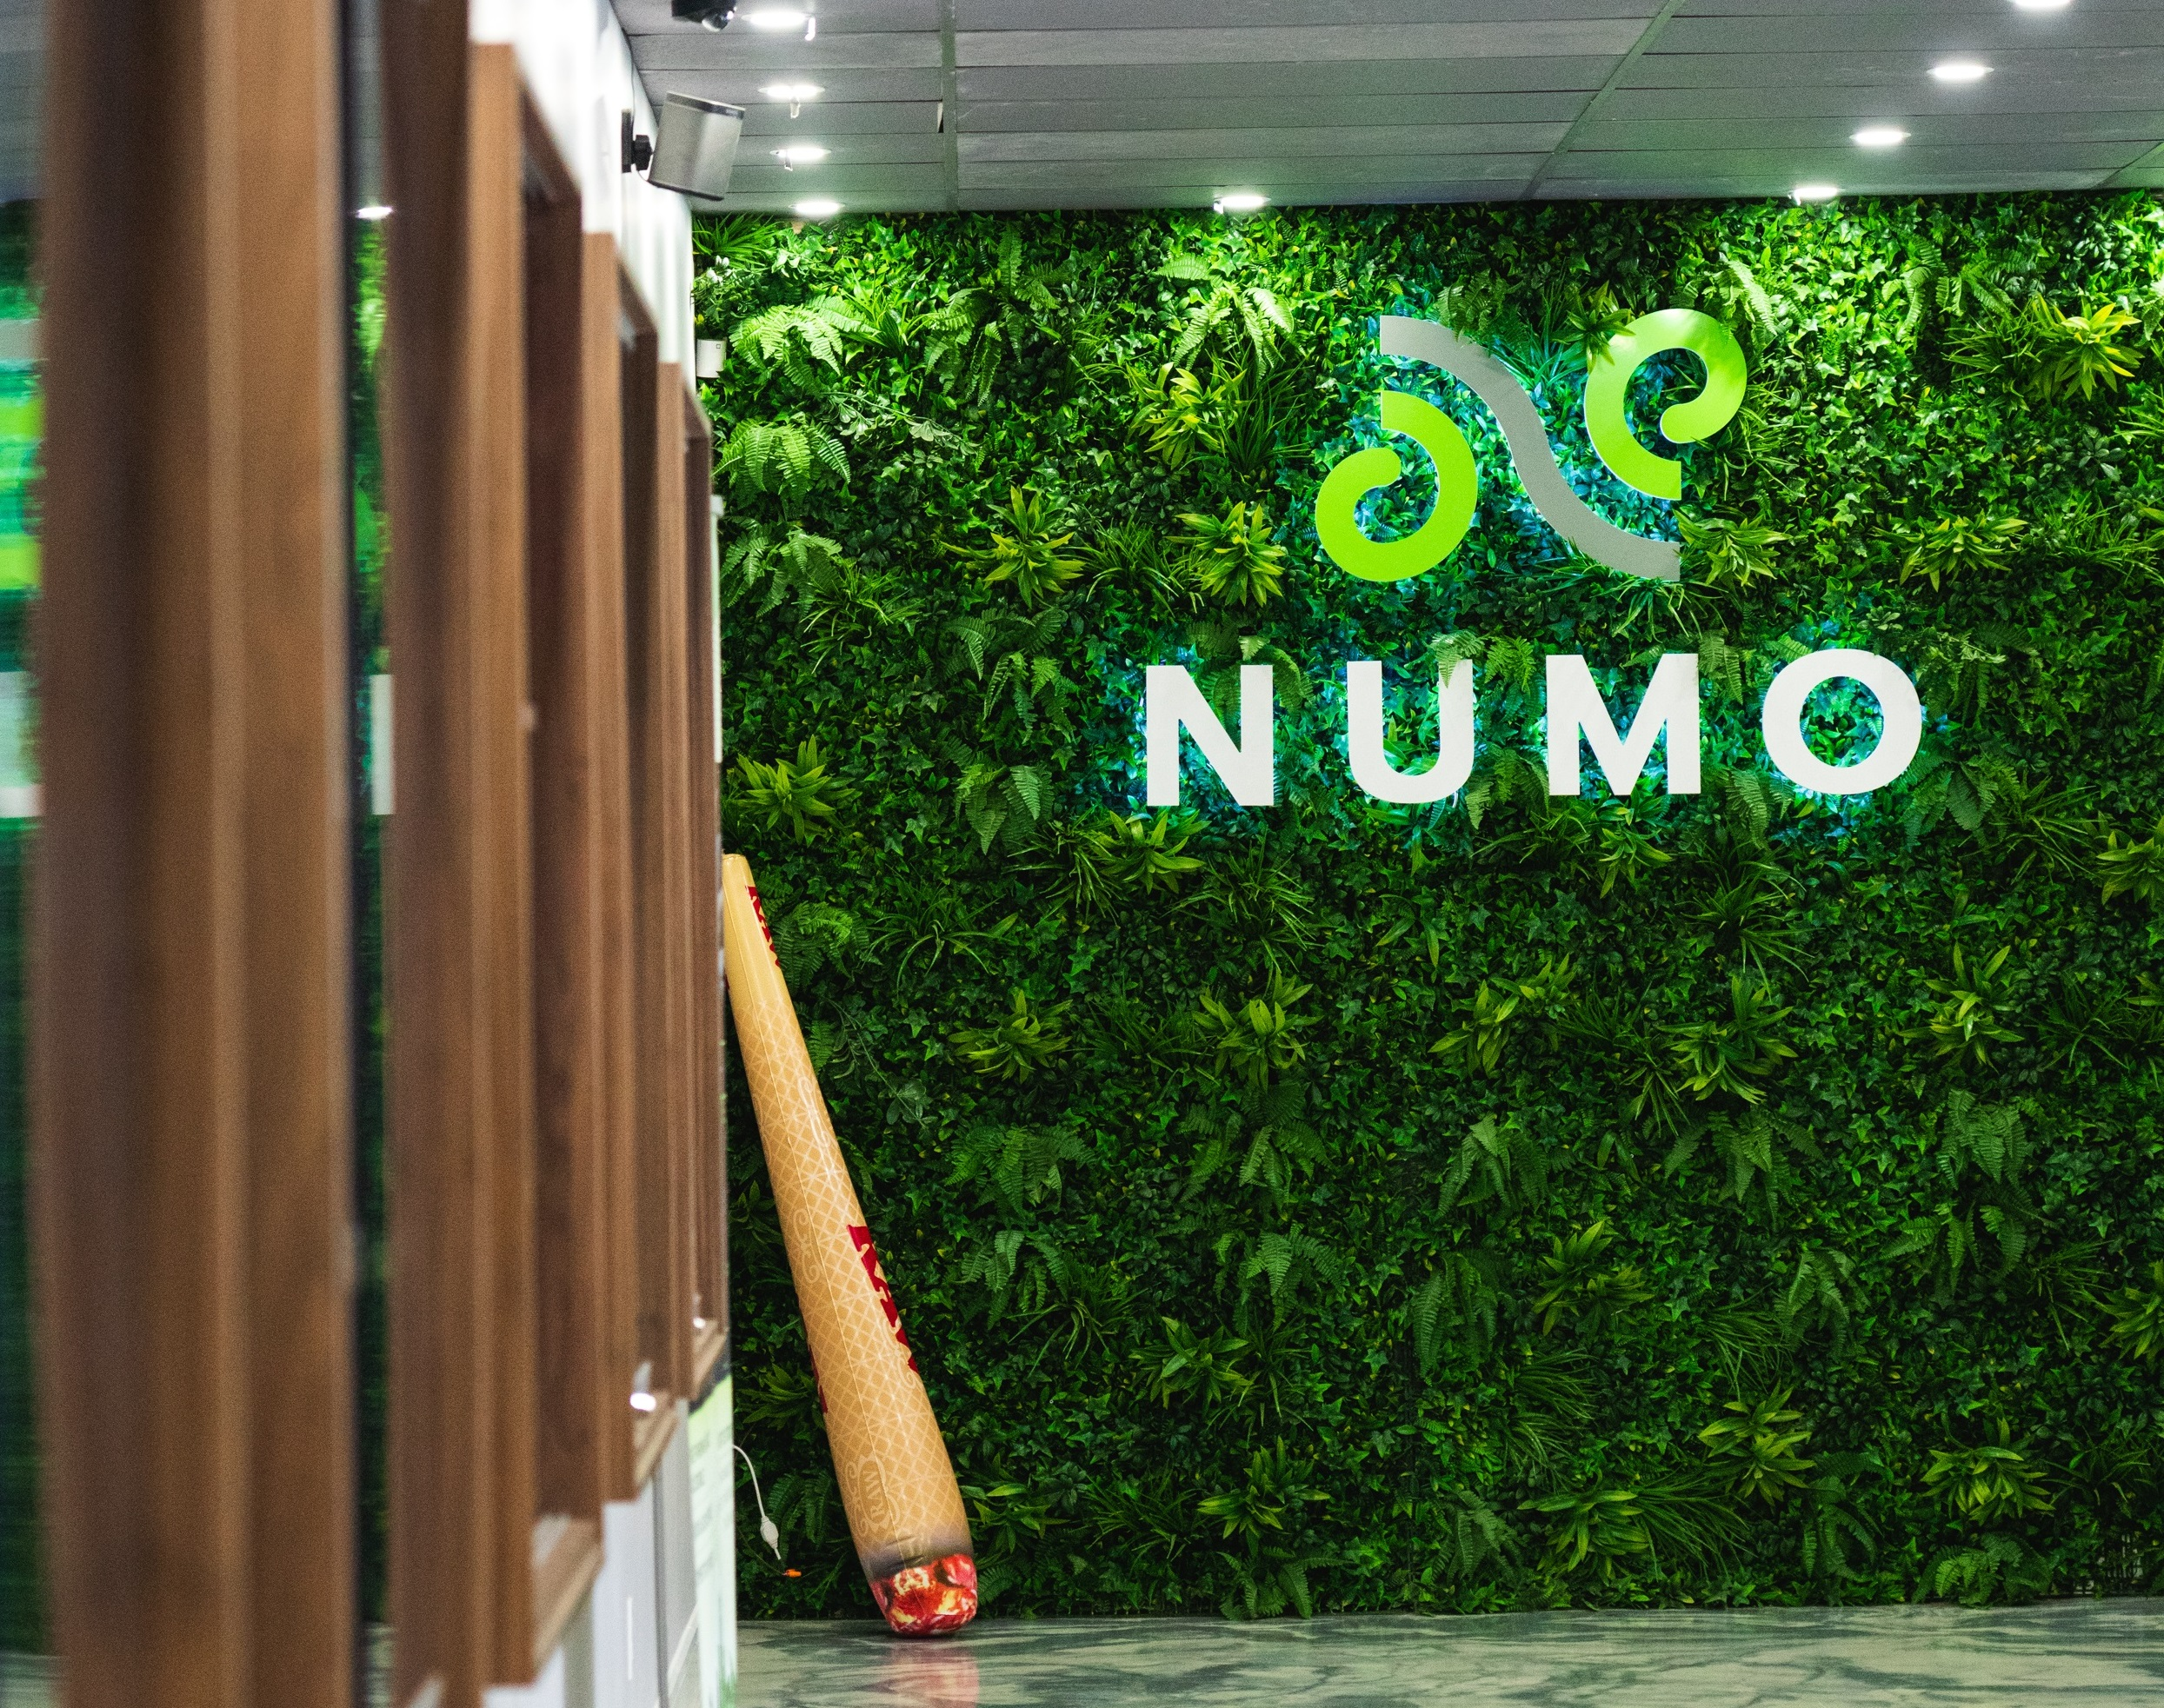 CULTURE - After decades of prohibition, changing the perception of cannabis from being thought of as an illegal and dangerous substance to one that is more socially accepted as a recreational stimulant, is no easy task. Through our education and training programs, NUMO will ensure that it delivers a factual and positive image of cannabis.